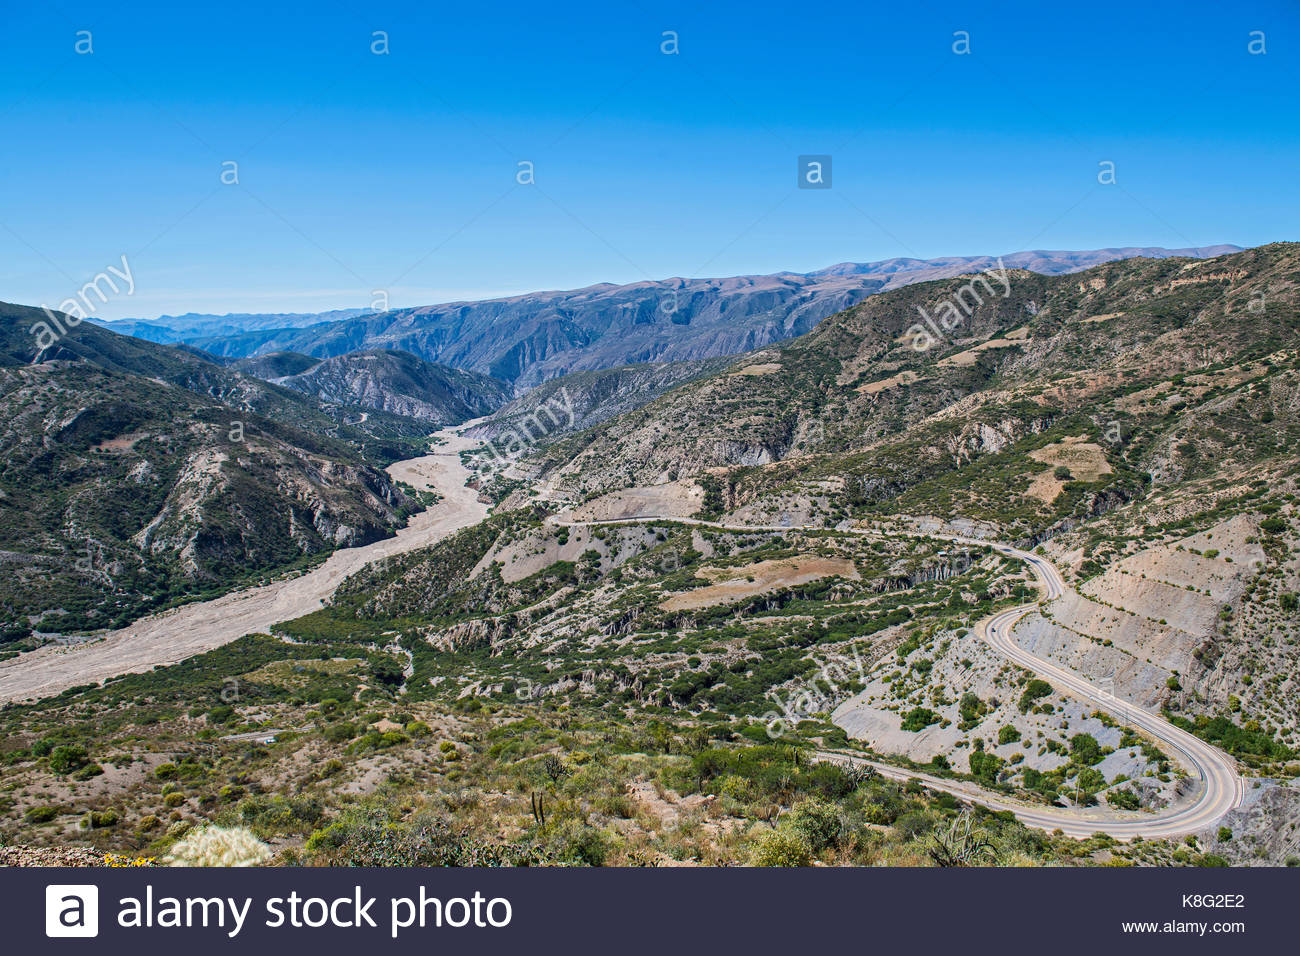 Elevated landscape view of winding road between Potosi and Sucre, Bolivia - Stock Image